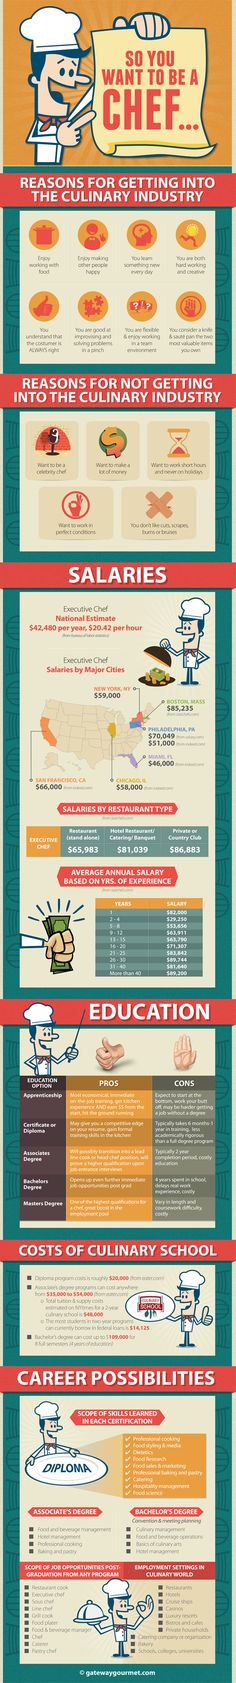 So You Want To Be A Chef - here's a helpful infographic with some useful information about reasons for and against getting into the culinary industry, salaries, education required, and a whole lot more.   Learn more about the culinary industry and find a school that may be right for you at www.gatewaygourmet.com